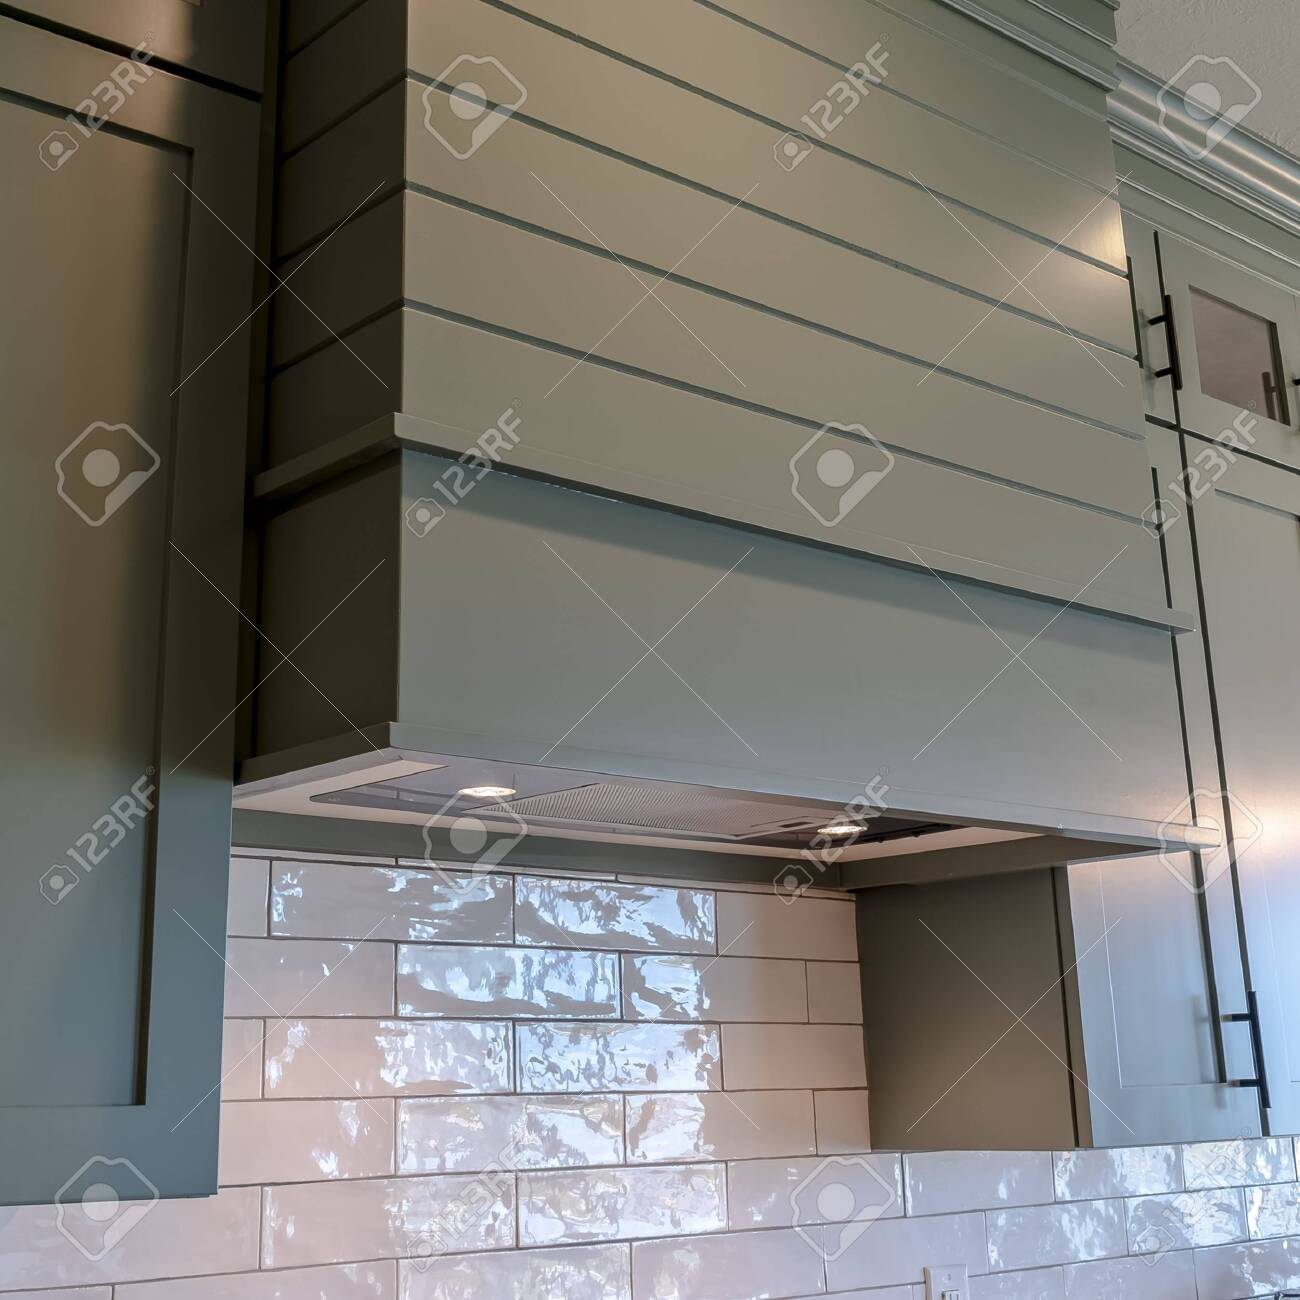 - Square Frame Kitchen Interior With Hanging Cabinets Against Tile